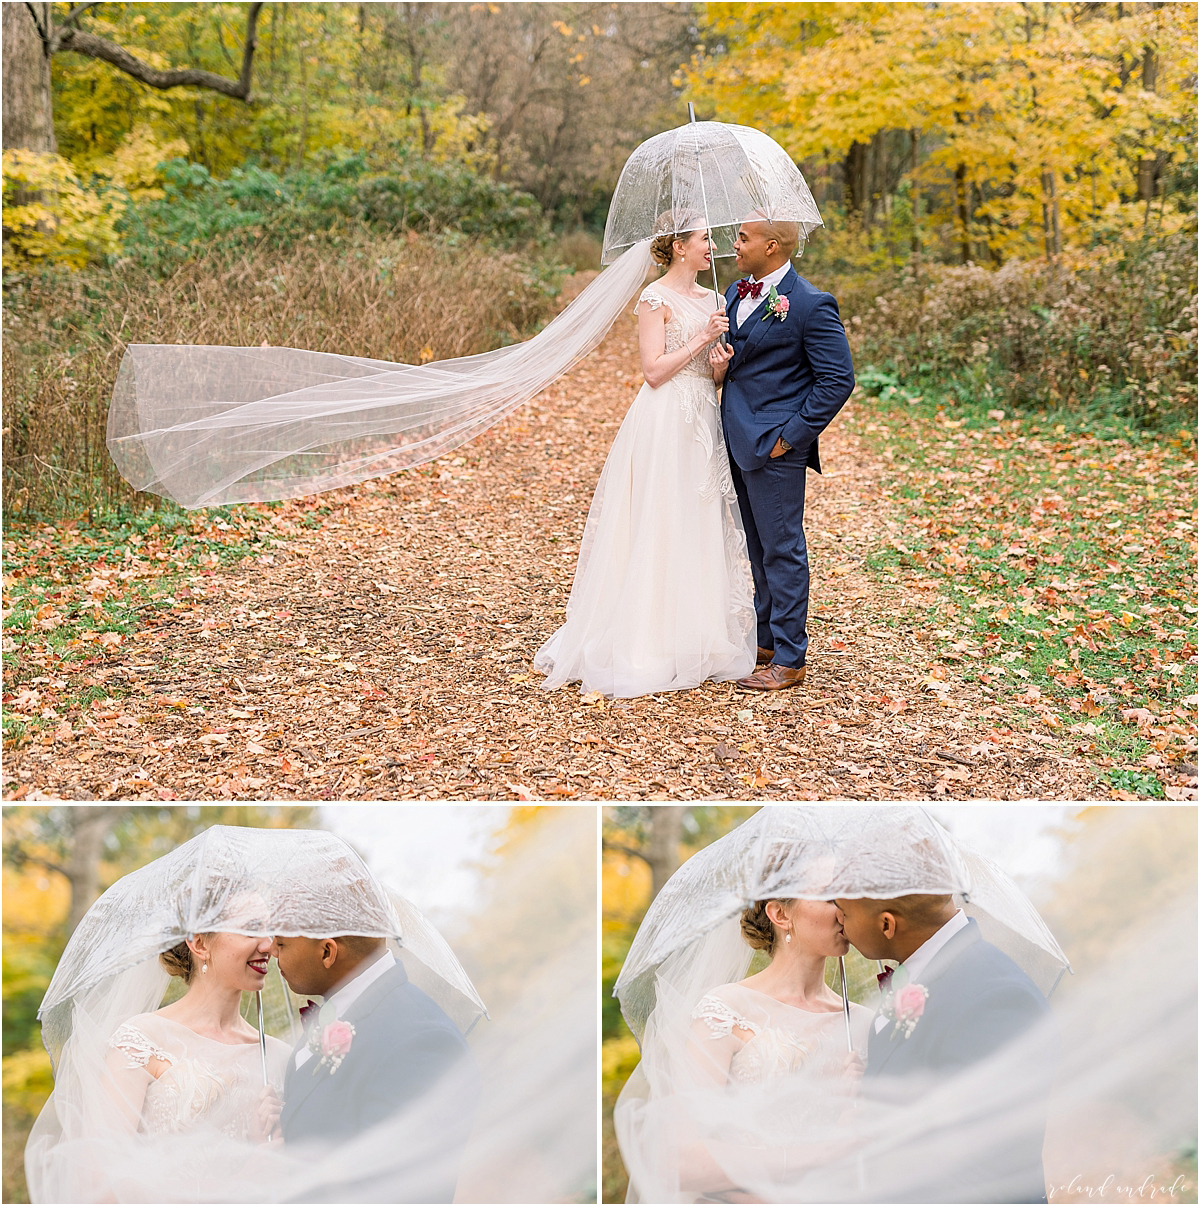 Naperville Country Club Wedding, Chicago Wedding Photographer, Naperville Wedding Photographer, Best Photographer In Aurora, Best Photographer In Chicago_0053.jpg